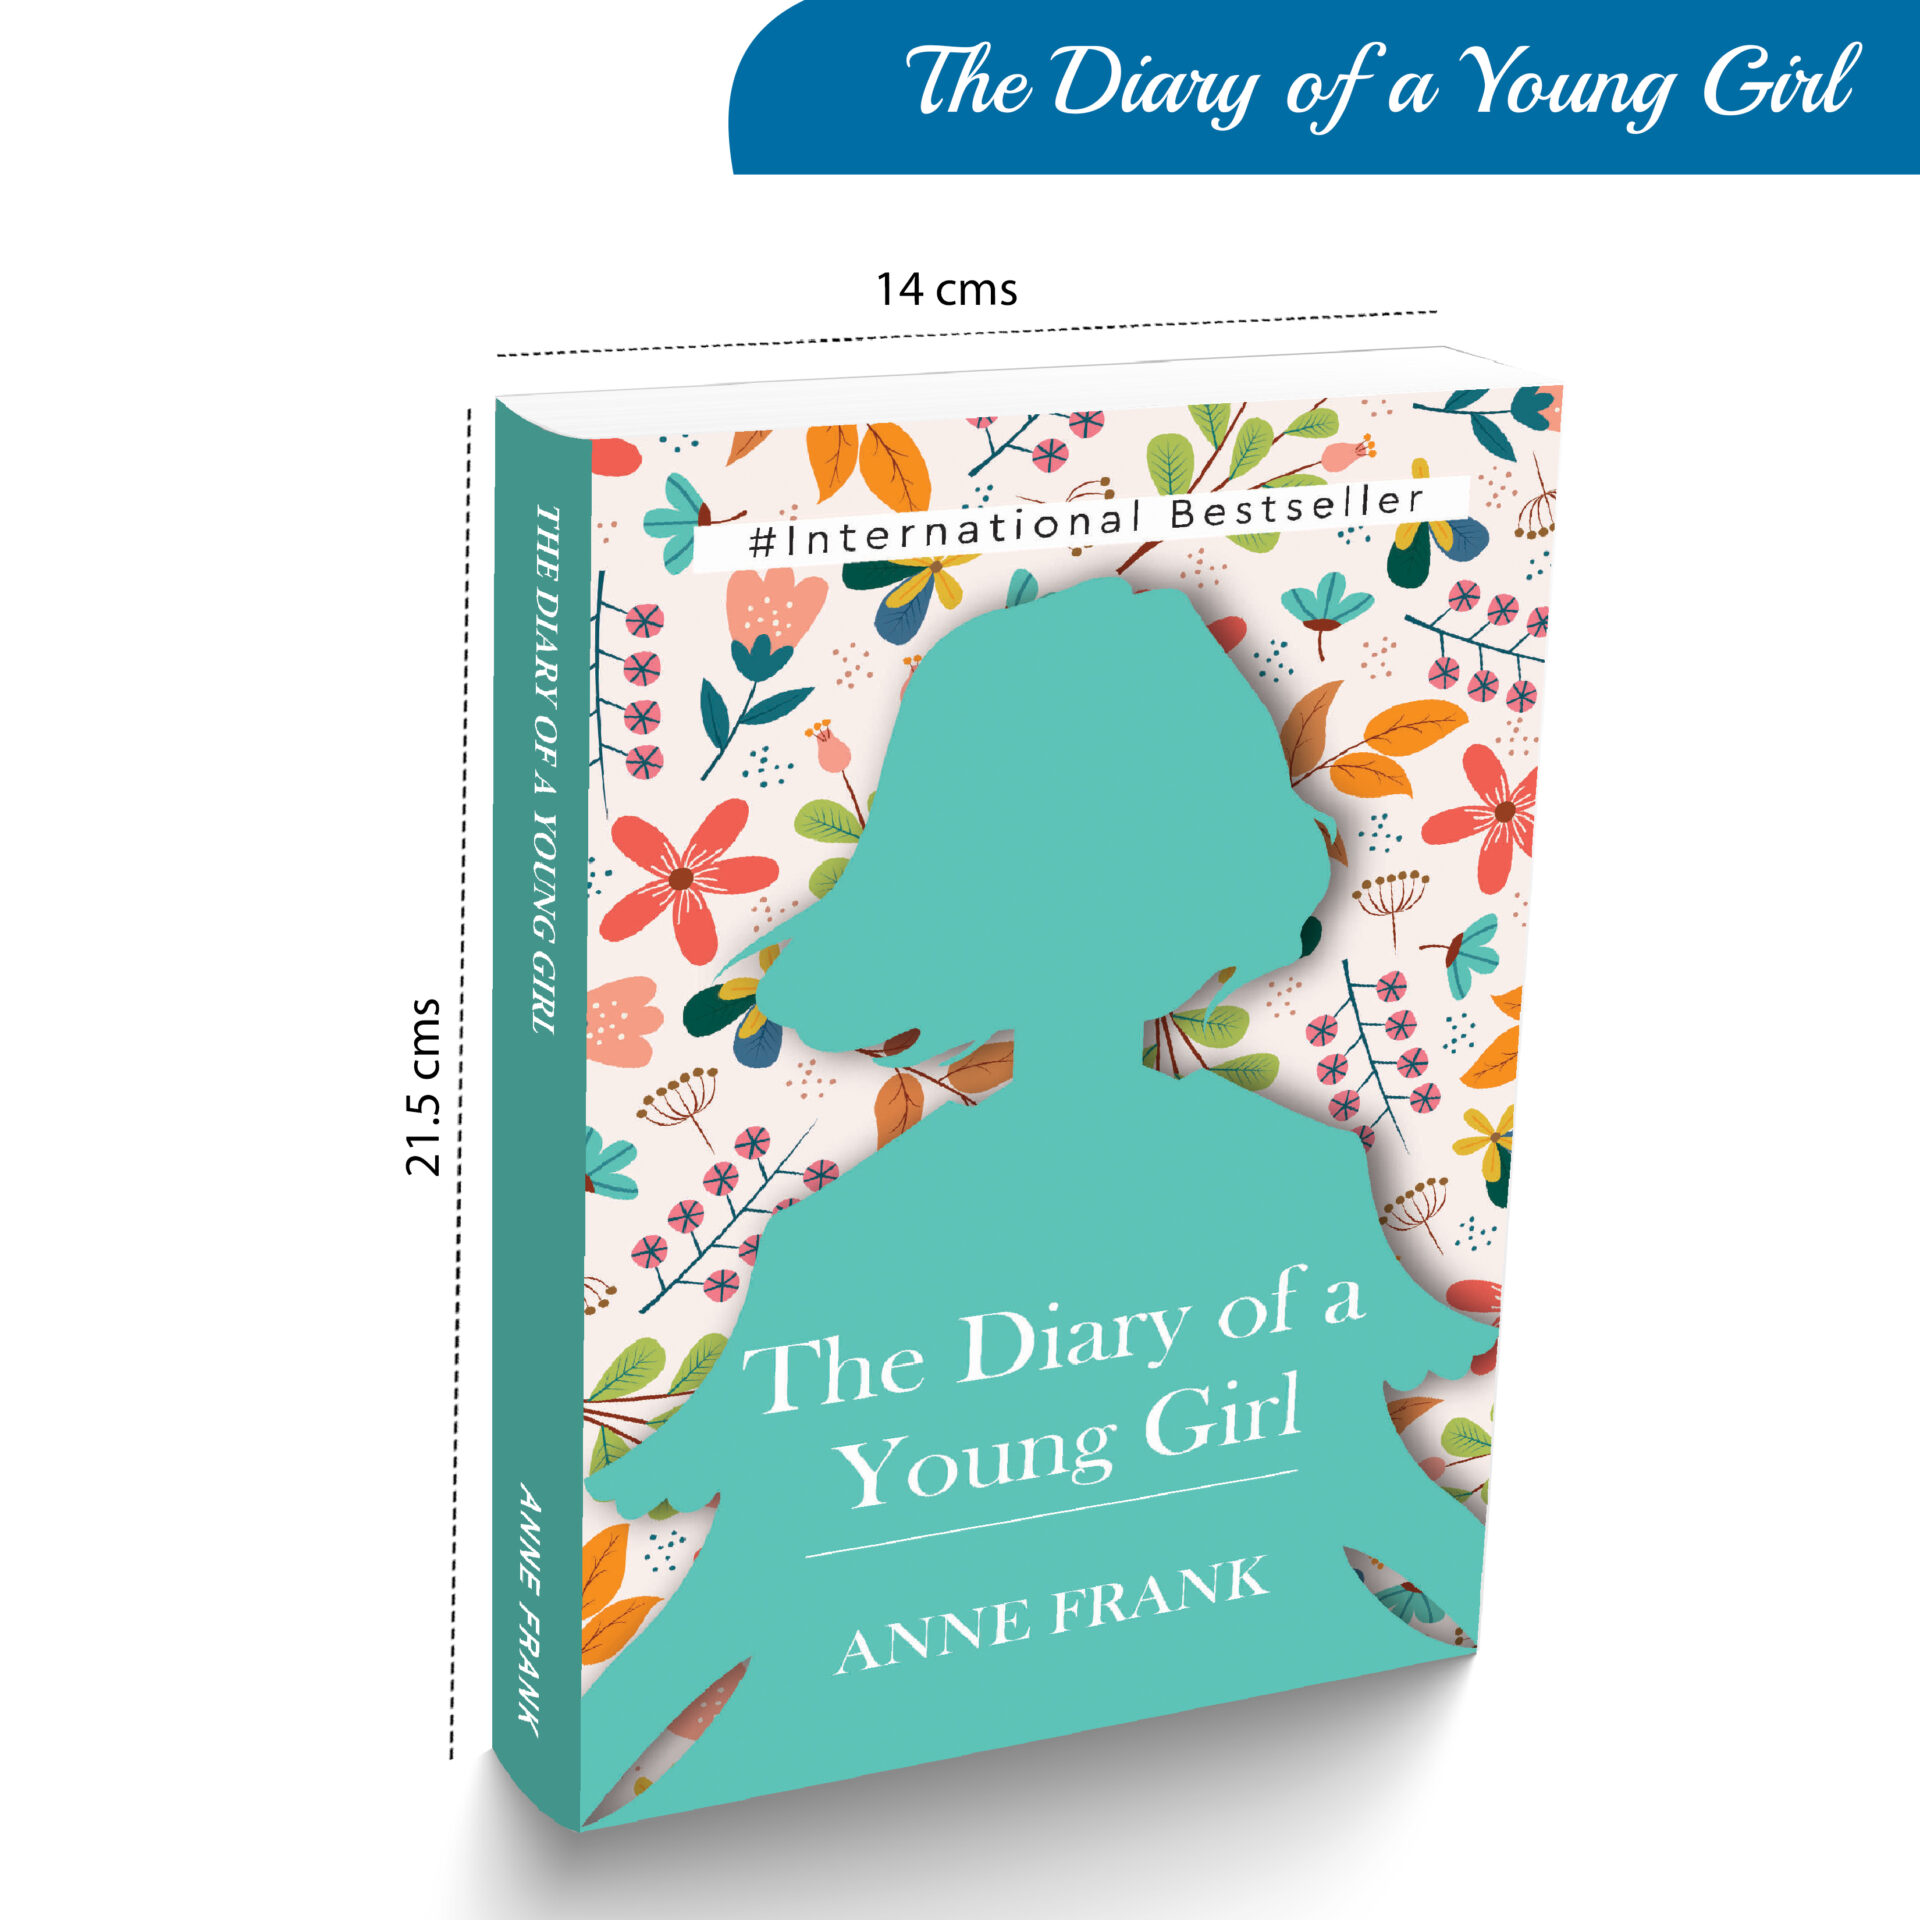 The Diary of a Young Girl 2